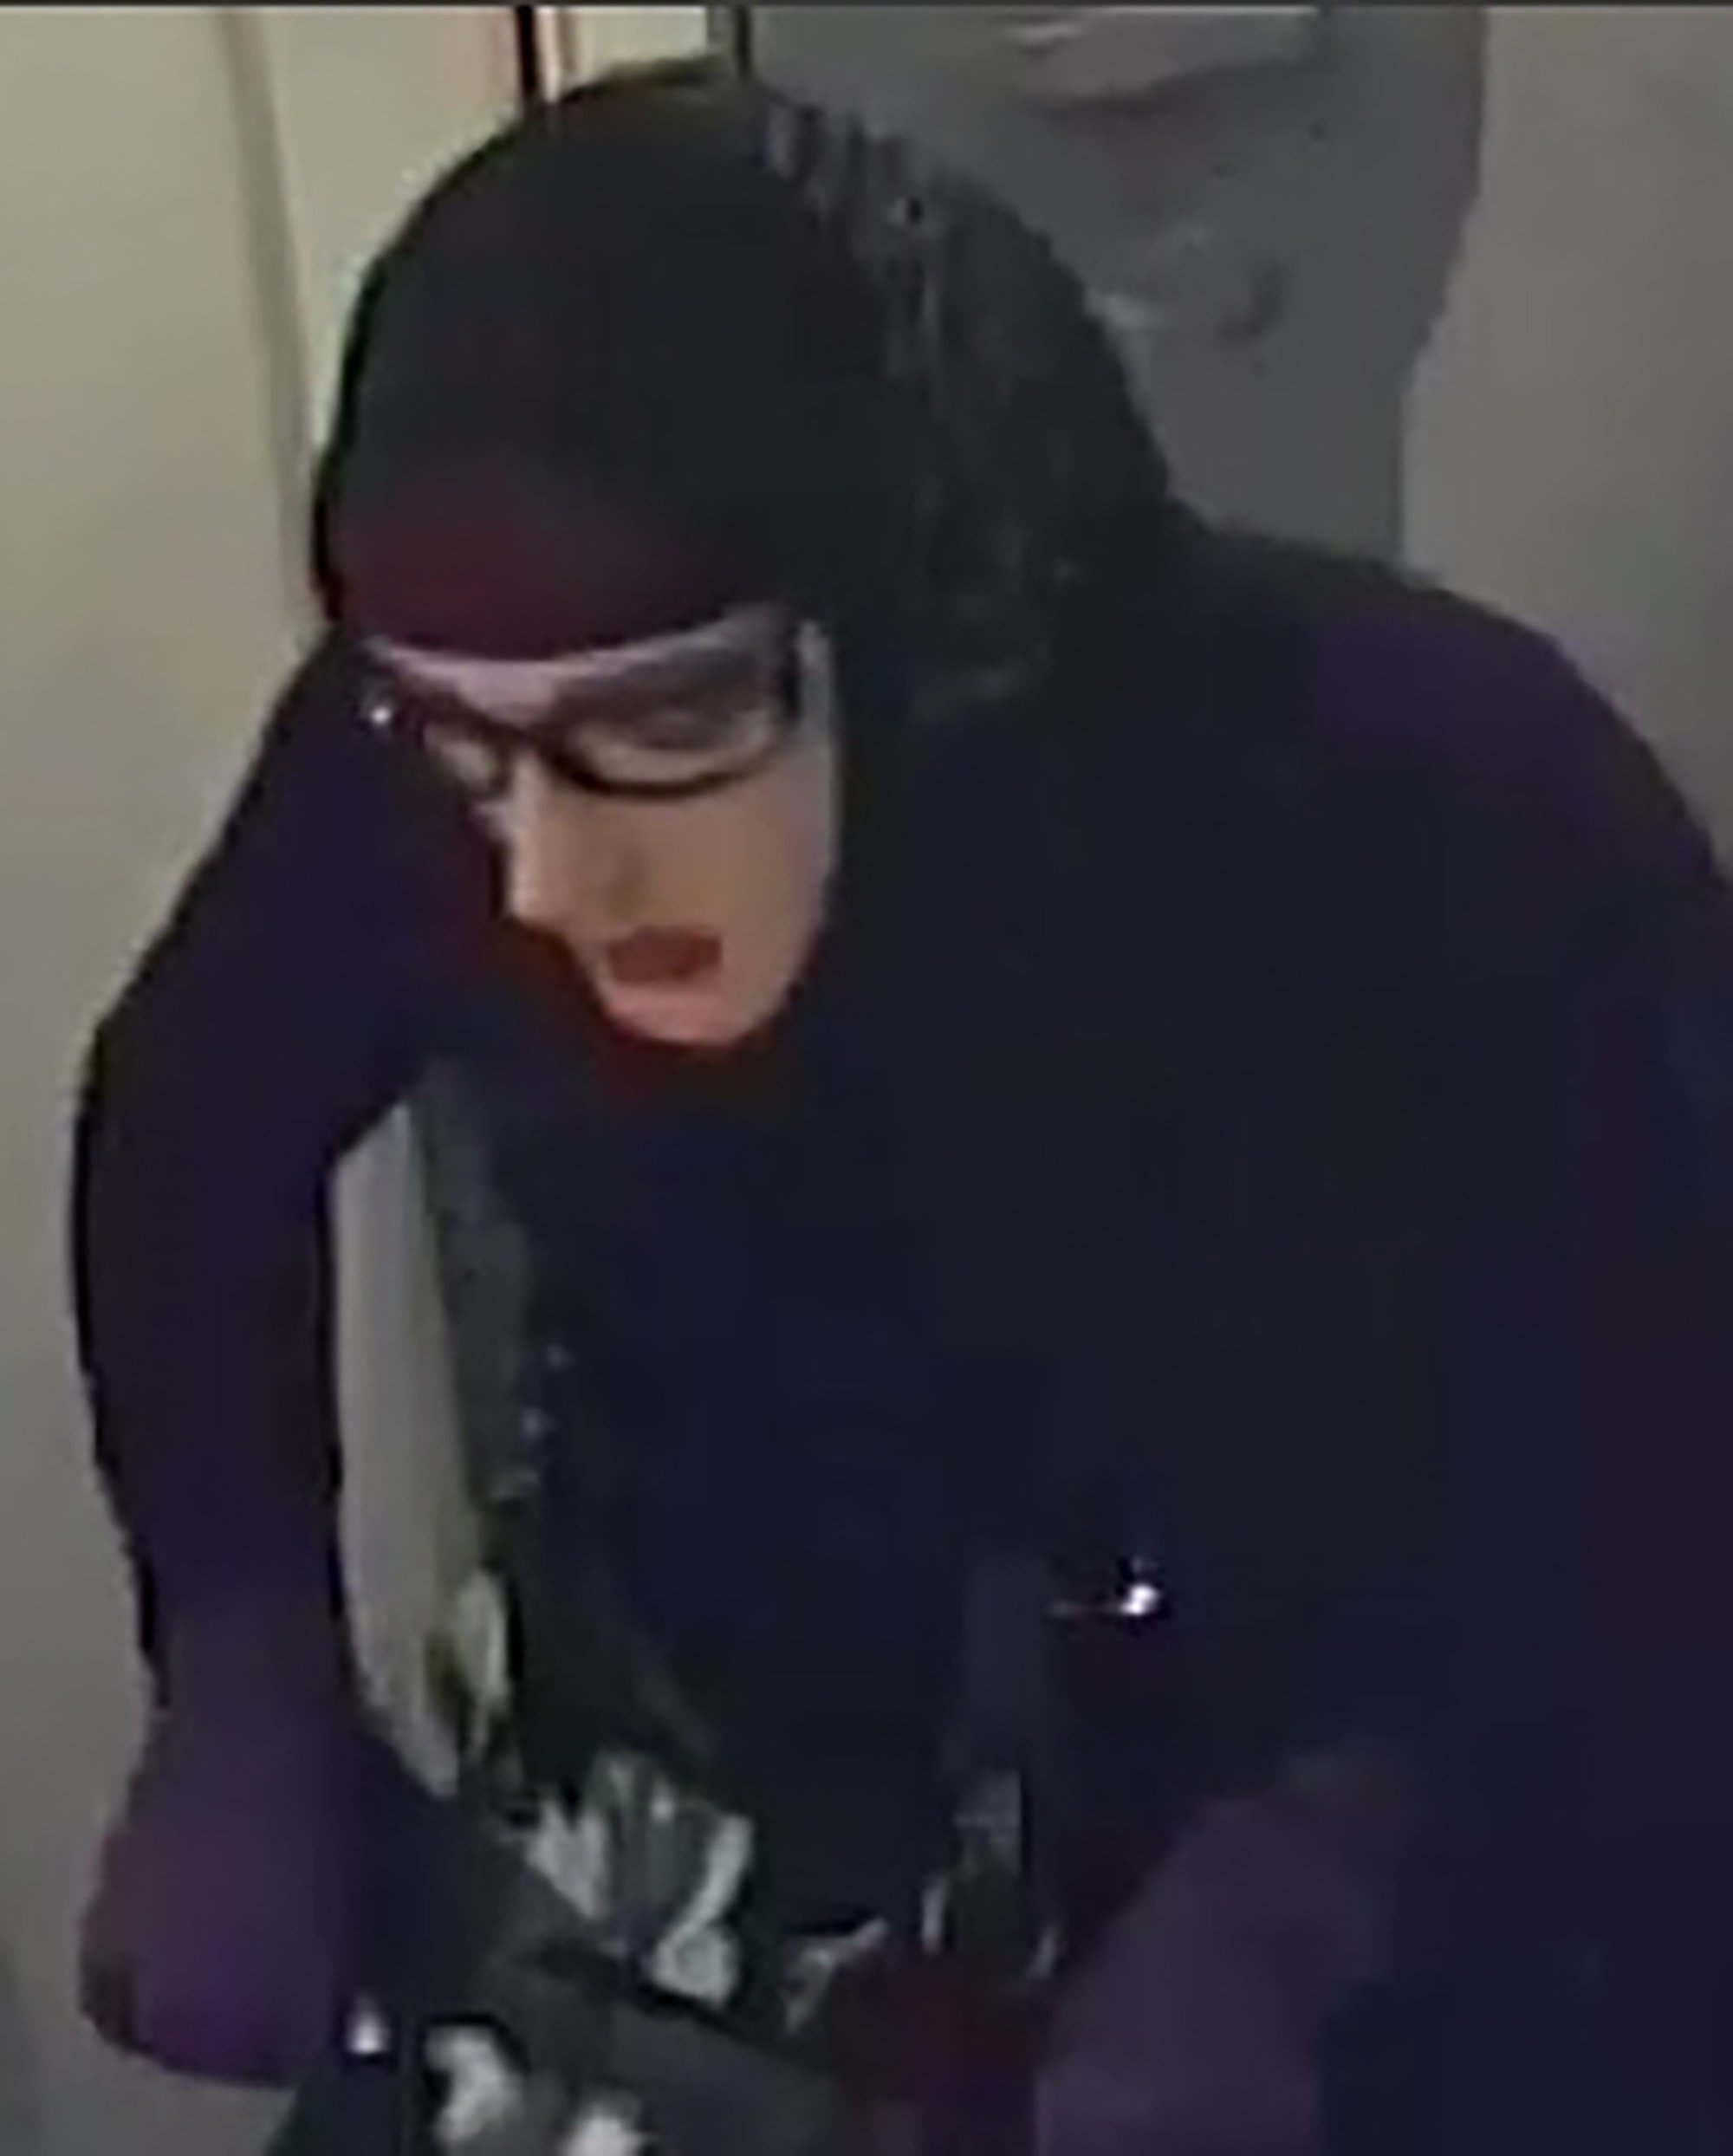 Pic shows: The hijab bank robber with the trolley Police have offered almost 2,000 GBP as a reward for any clues about the identity of a male bank robber dressed as a Muslim woman in a hijab after a similar suspect was also arrested. Austrian police have issued a reward of 2,000 EUR (1,771 GBP) in the hope witnesses will come forward with clues about the notorious hijab bank robber who carried out a raid on the Turkish DenizBank bank in Linz in the state of Upper Austria. They have issued new pictures showing the man disguised as a Muslim woman wearing a hijab and pinstripe trousers, carrying a shopping trolley and a shoulder bag. The suspected robber is wearing glasses and a latex mask with red lips. He reportedly robbed the bank in Linz by threatening an employee with a pistol, taking the money out of the register and fleeing on a grey scooter. In the Austrian capital Vienna, he allegedly attempted to rob a bank in the same manner with a pistol but only managed to frighten employees who began screaming. He is said to have then sprayed them with pepper spray and before fleeing the scene. The perpetrator has been described as being between the ages of 20 to 35 with a slender stature and measuring 1.80 to 1.90 metres (5.9 to 6.23 feet) tall. The reward comes after police arrested a 35-year-old man last month on suspicion of robbing a Turkish bank in Vienna also dressed as a Muslim woman in a hijab and carrying a golden coloured pistol. He allegedly handed over a handwritten note demanding cash from the Vienna bank. He escaped with thousands of euros in cash but police were tipped off to his identity when he was snapped in a small park nearby by a witness who had followed him. In the park, he had no mask on and was sitting on a bench in a pink shirt and shorts. Police have said that CCTV footage indicated there were at least two different men who have been dressing up as Muslim women in hijabs in order to carry out at least four robberies in Vienna and Lin